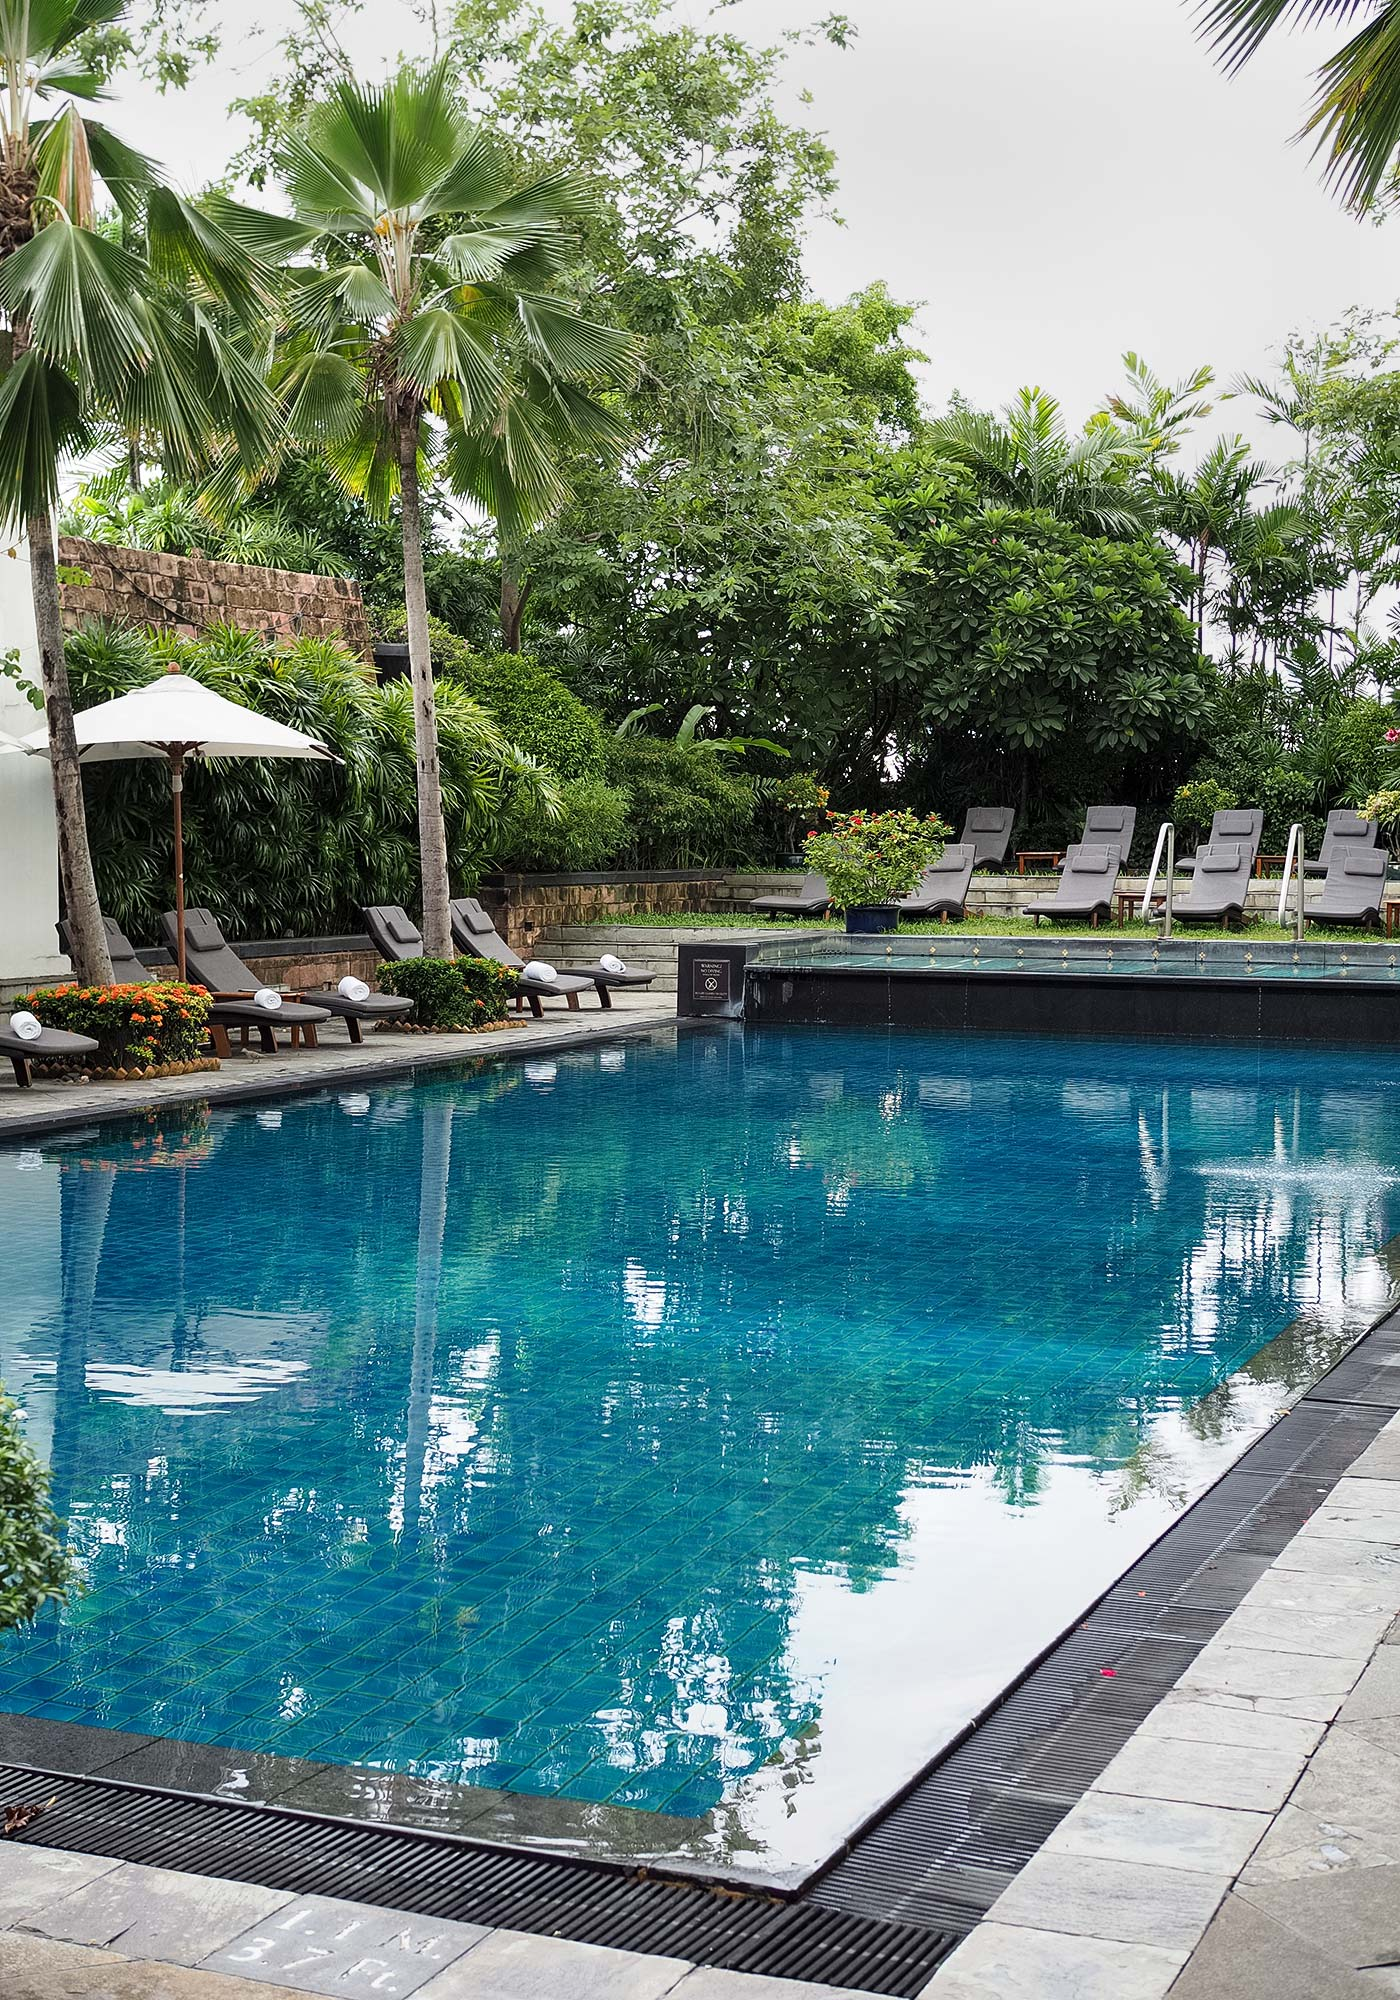 jw_marriott-bangkok-pool